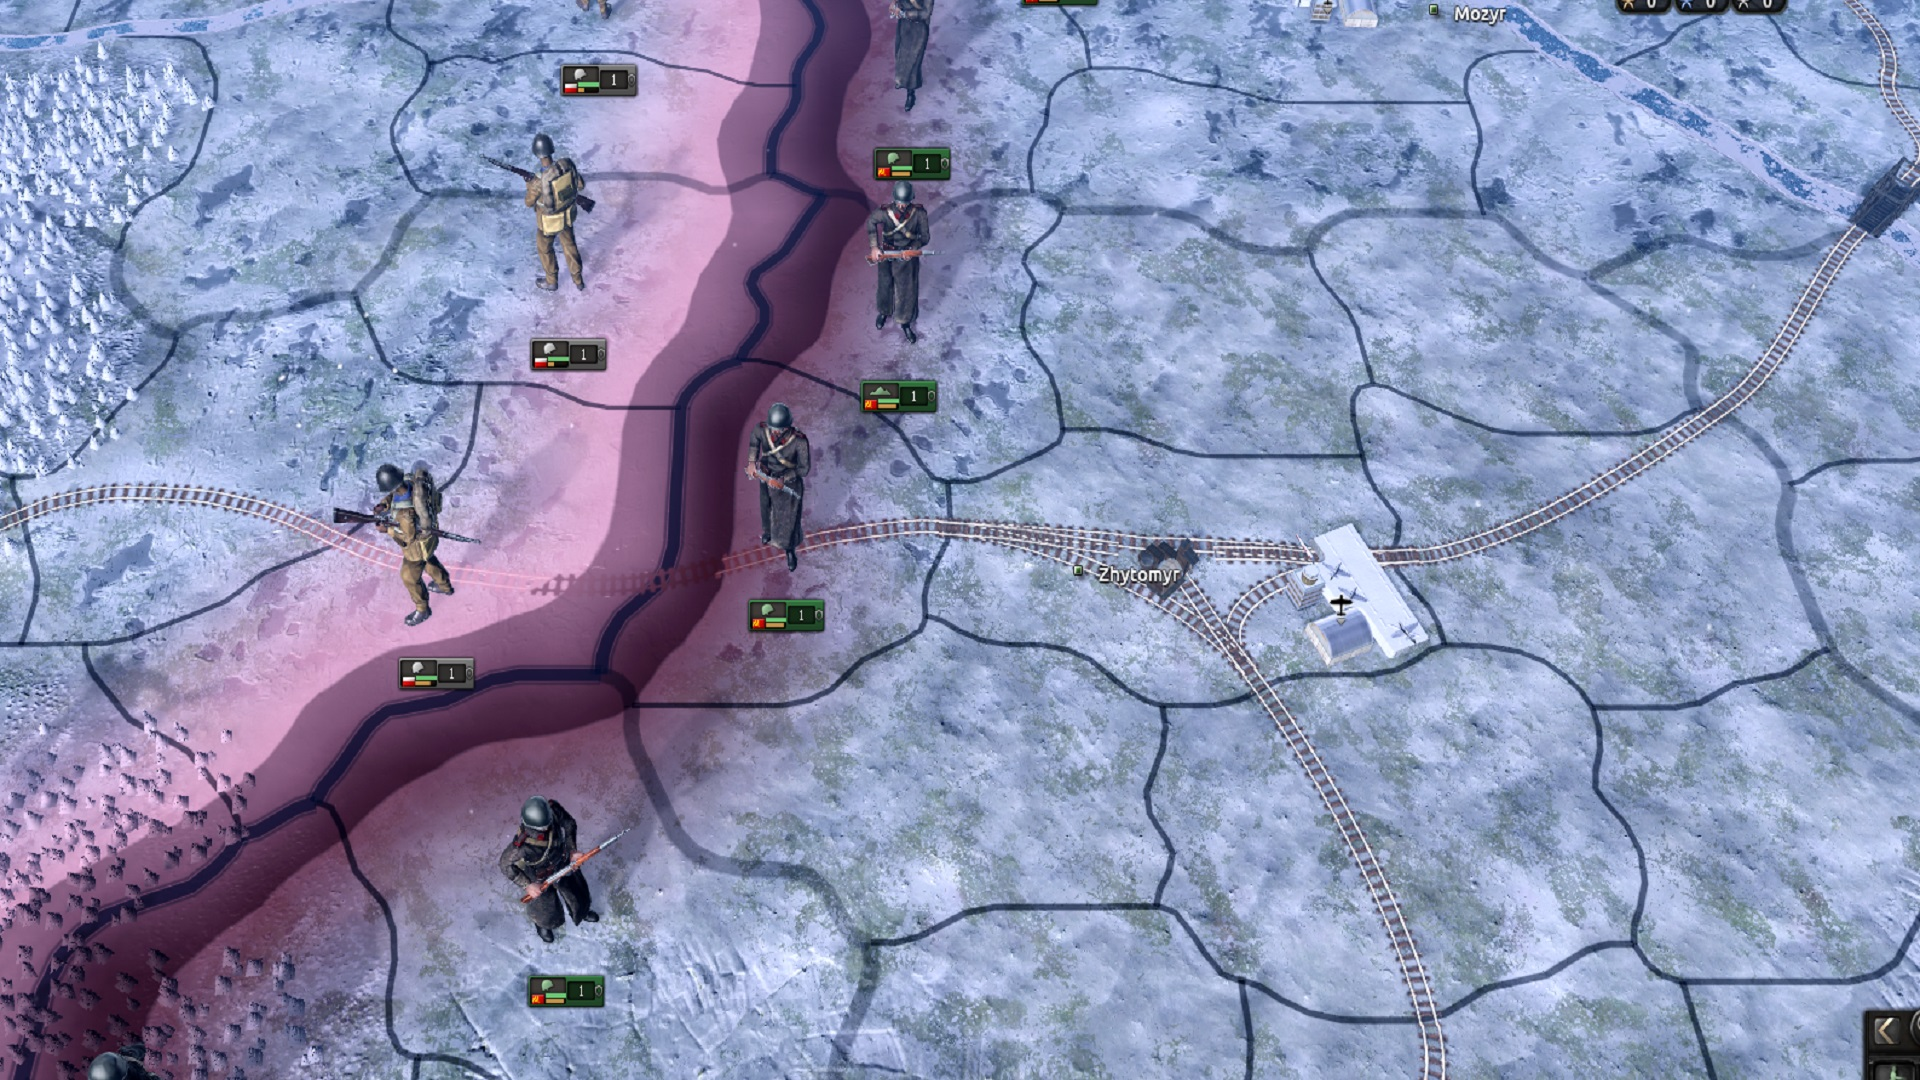 Hearts of Iron 4's upcoming 1.11 patch and new DLC will focus on the Eastern Front